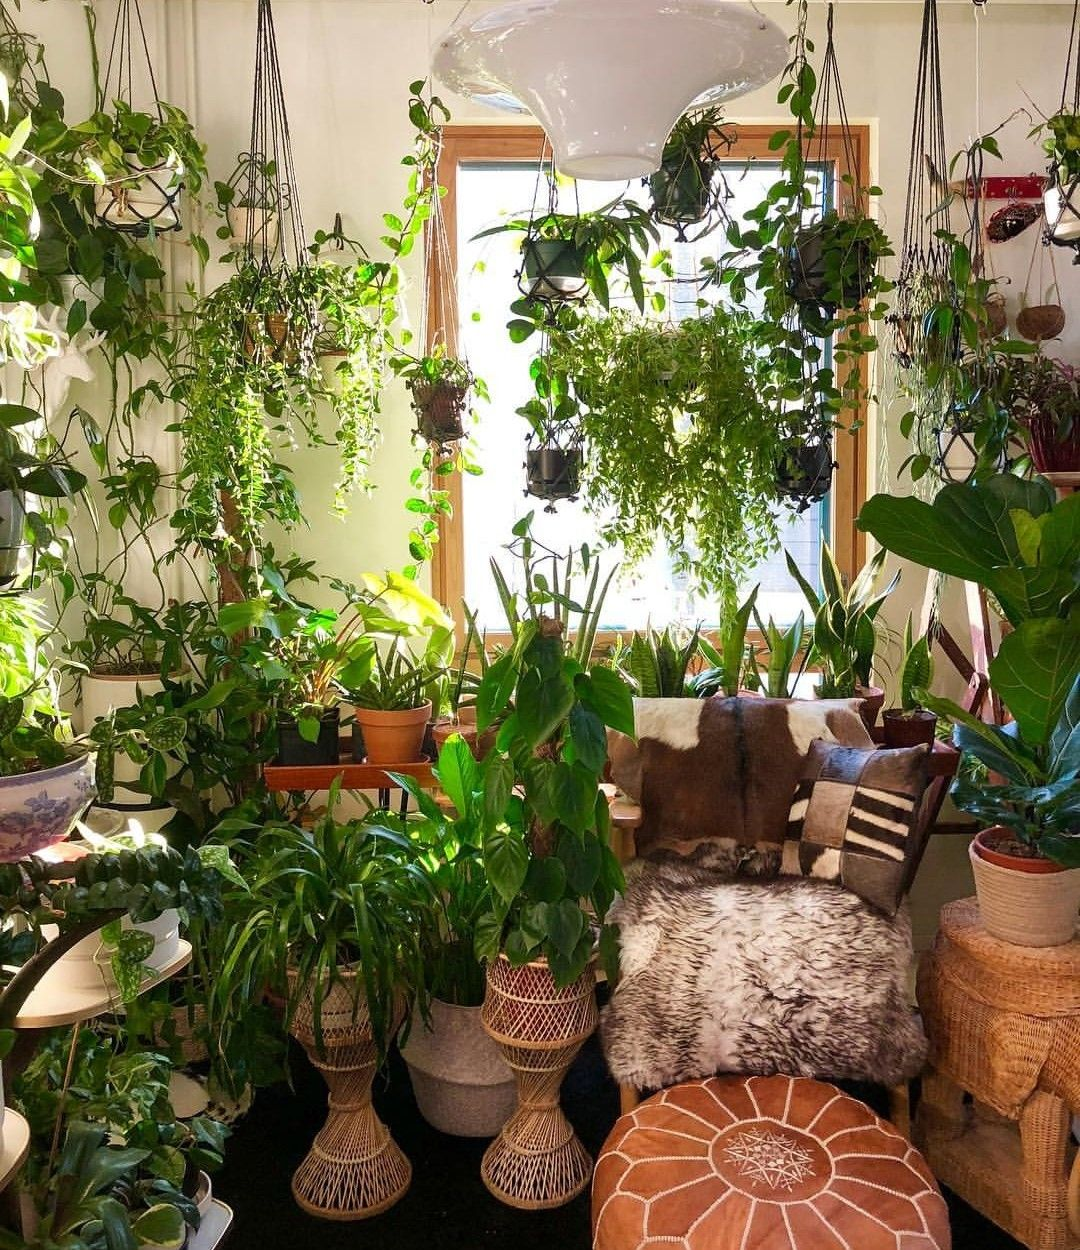 35 Indoor Garden Ideas To Green Your Home: Indoor Plants, Plants, Indoor